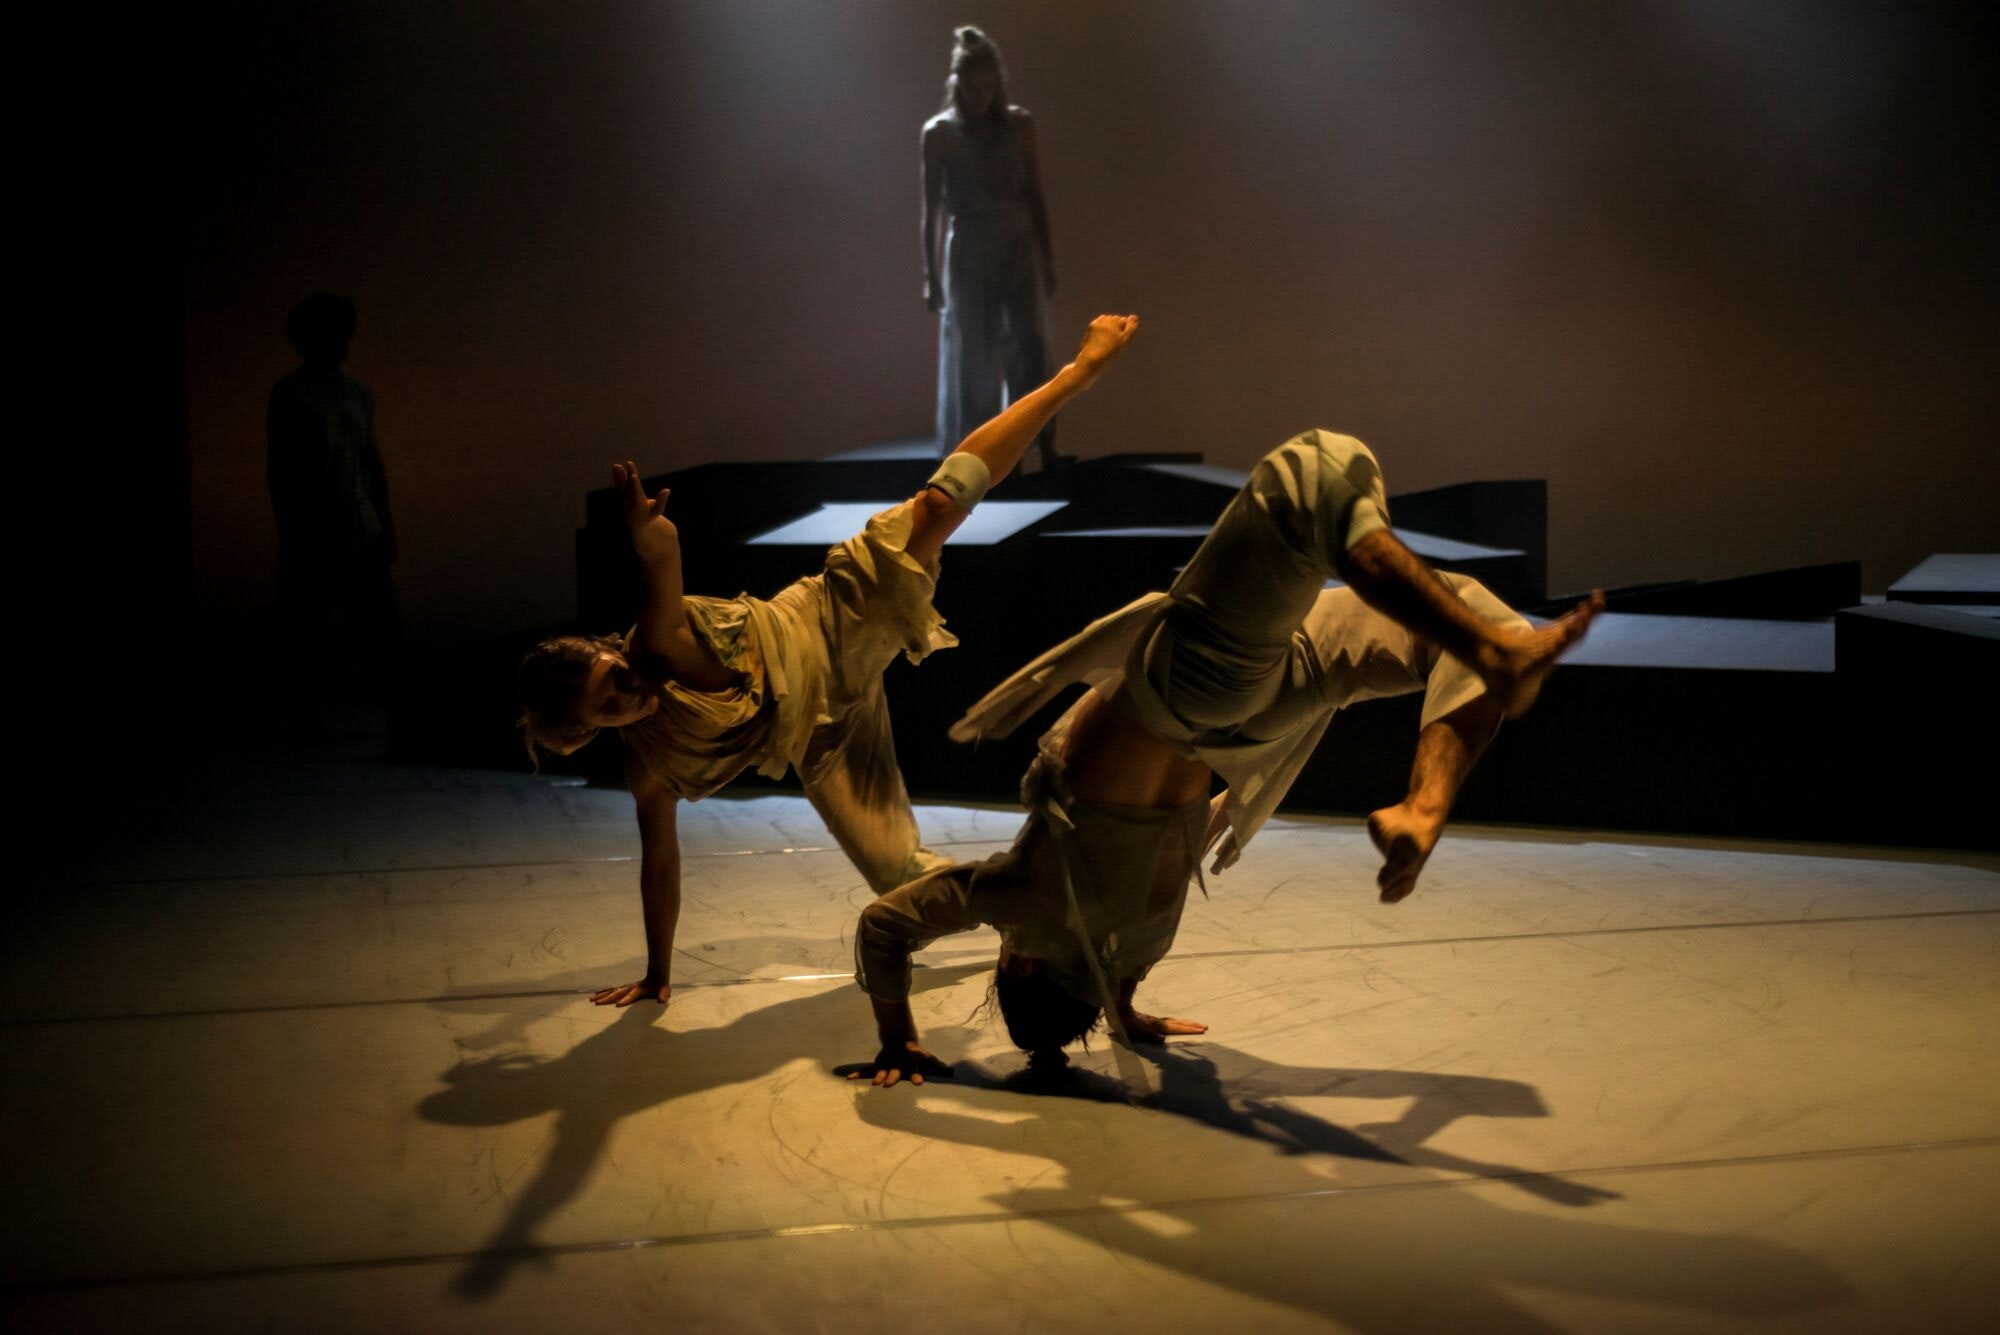 Dancenorth's Dust is ambitious theatre in an age of uncertainty